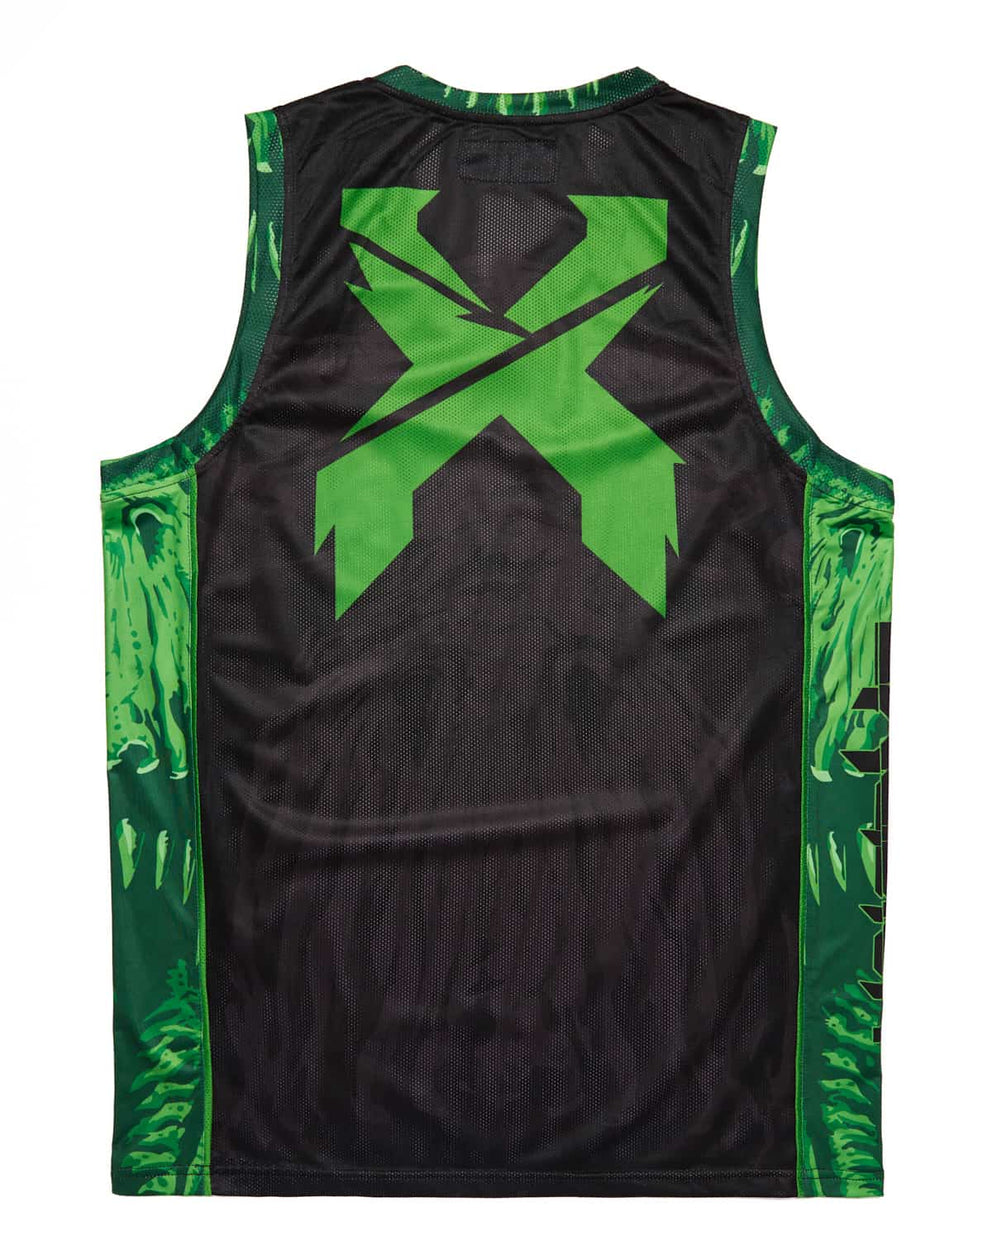 'Excision Rex' Basketball Jersey - Green/Black